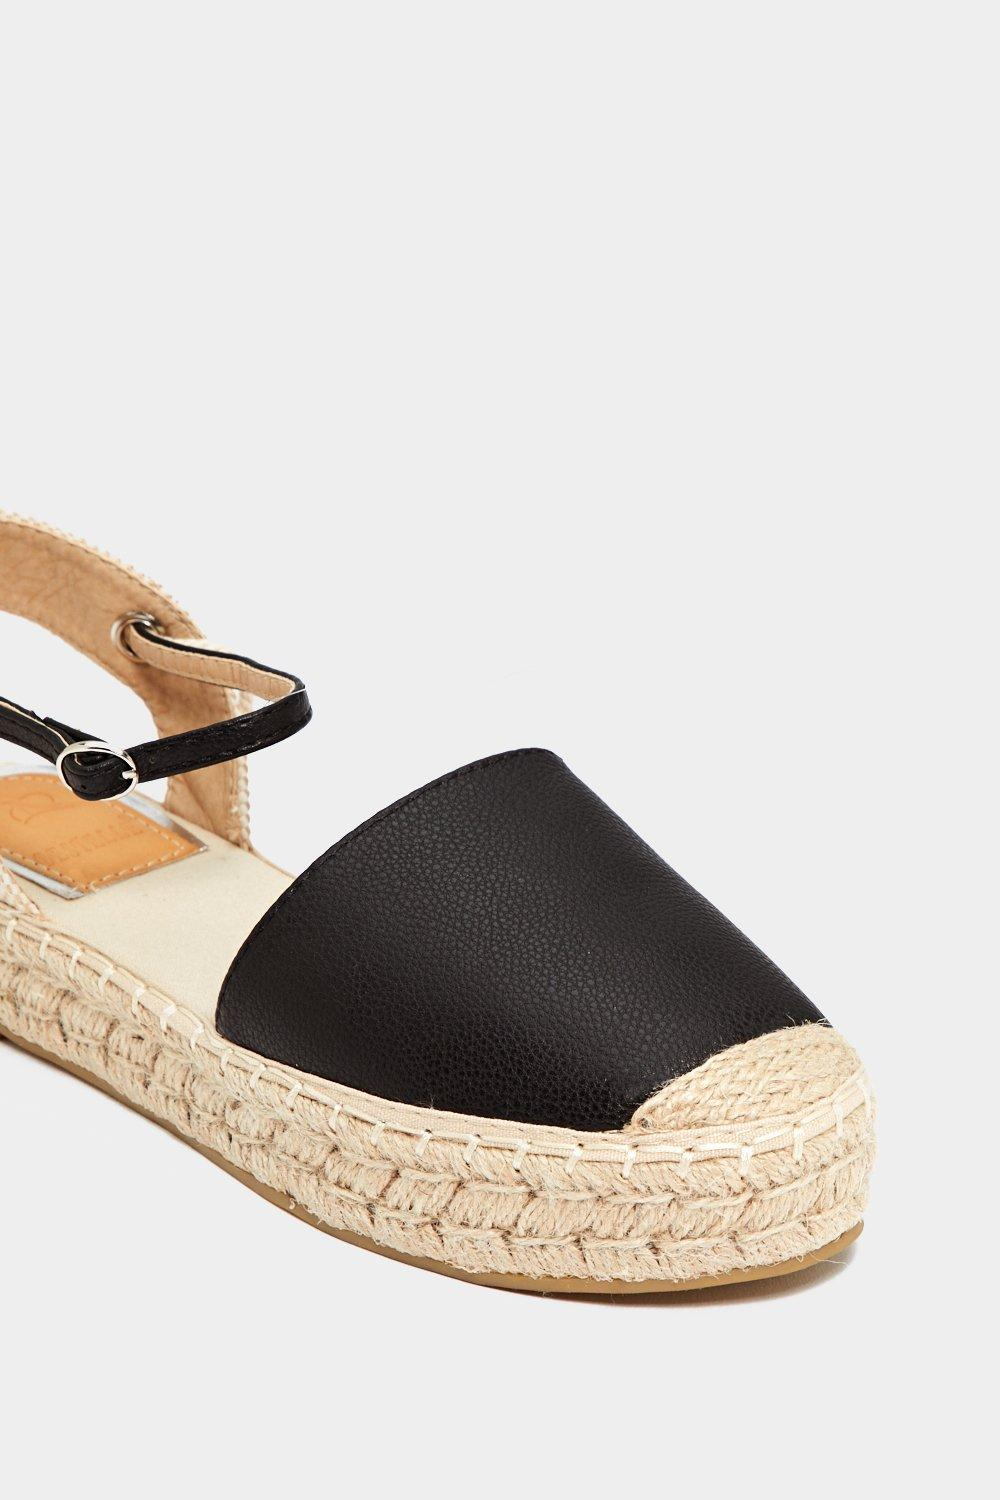 footlocker pictures buy cheap original Know the Ropes Espadrille Platform cheap huge surprise supply online discount wholesale price 79wsDpcflA